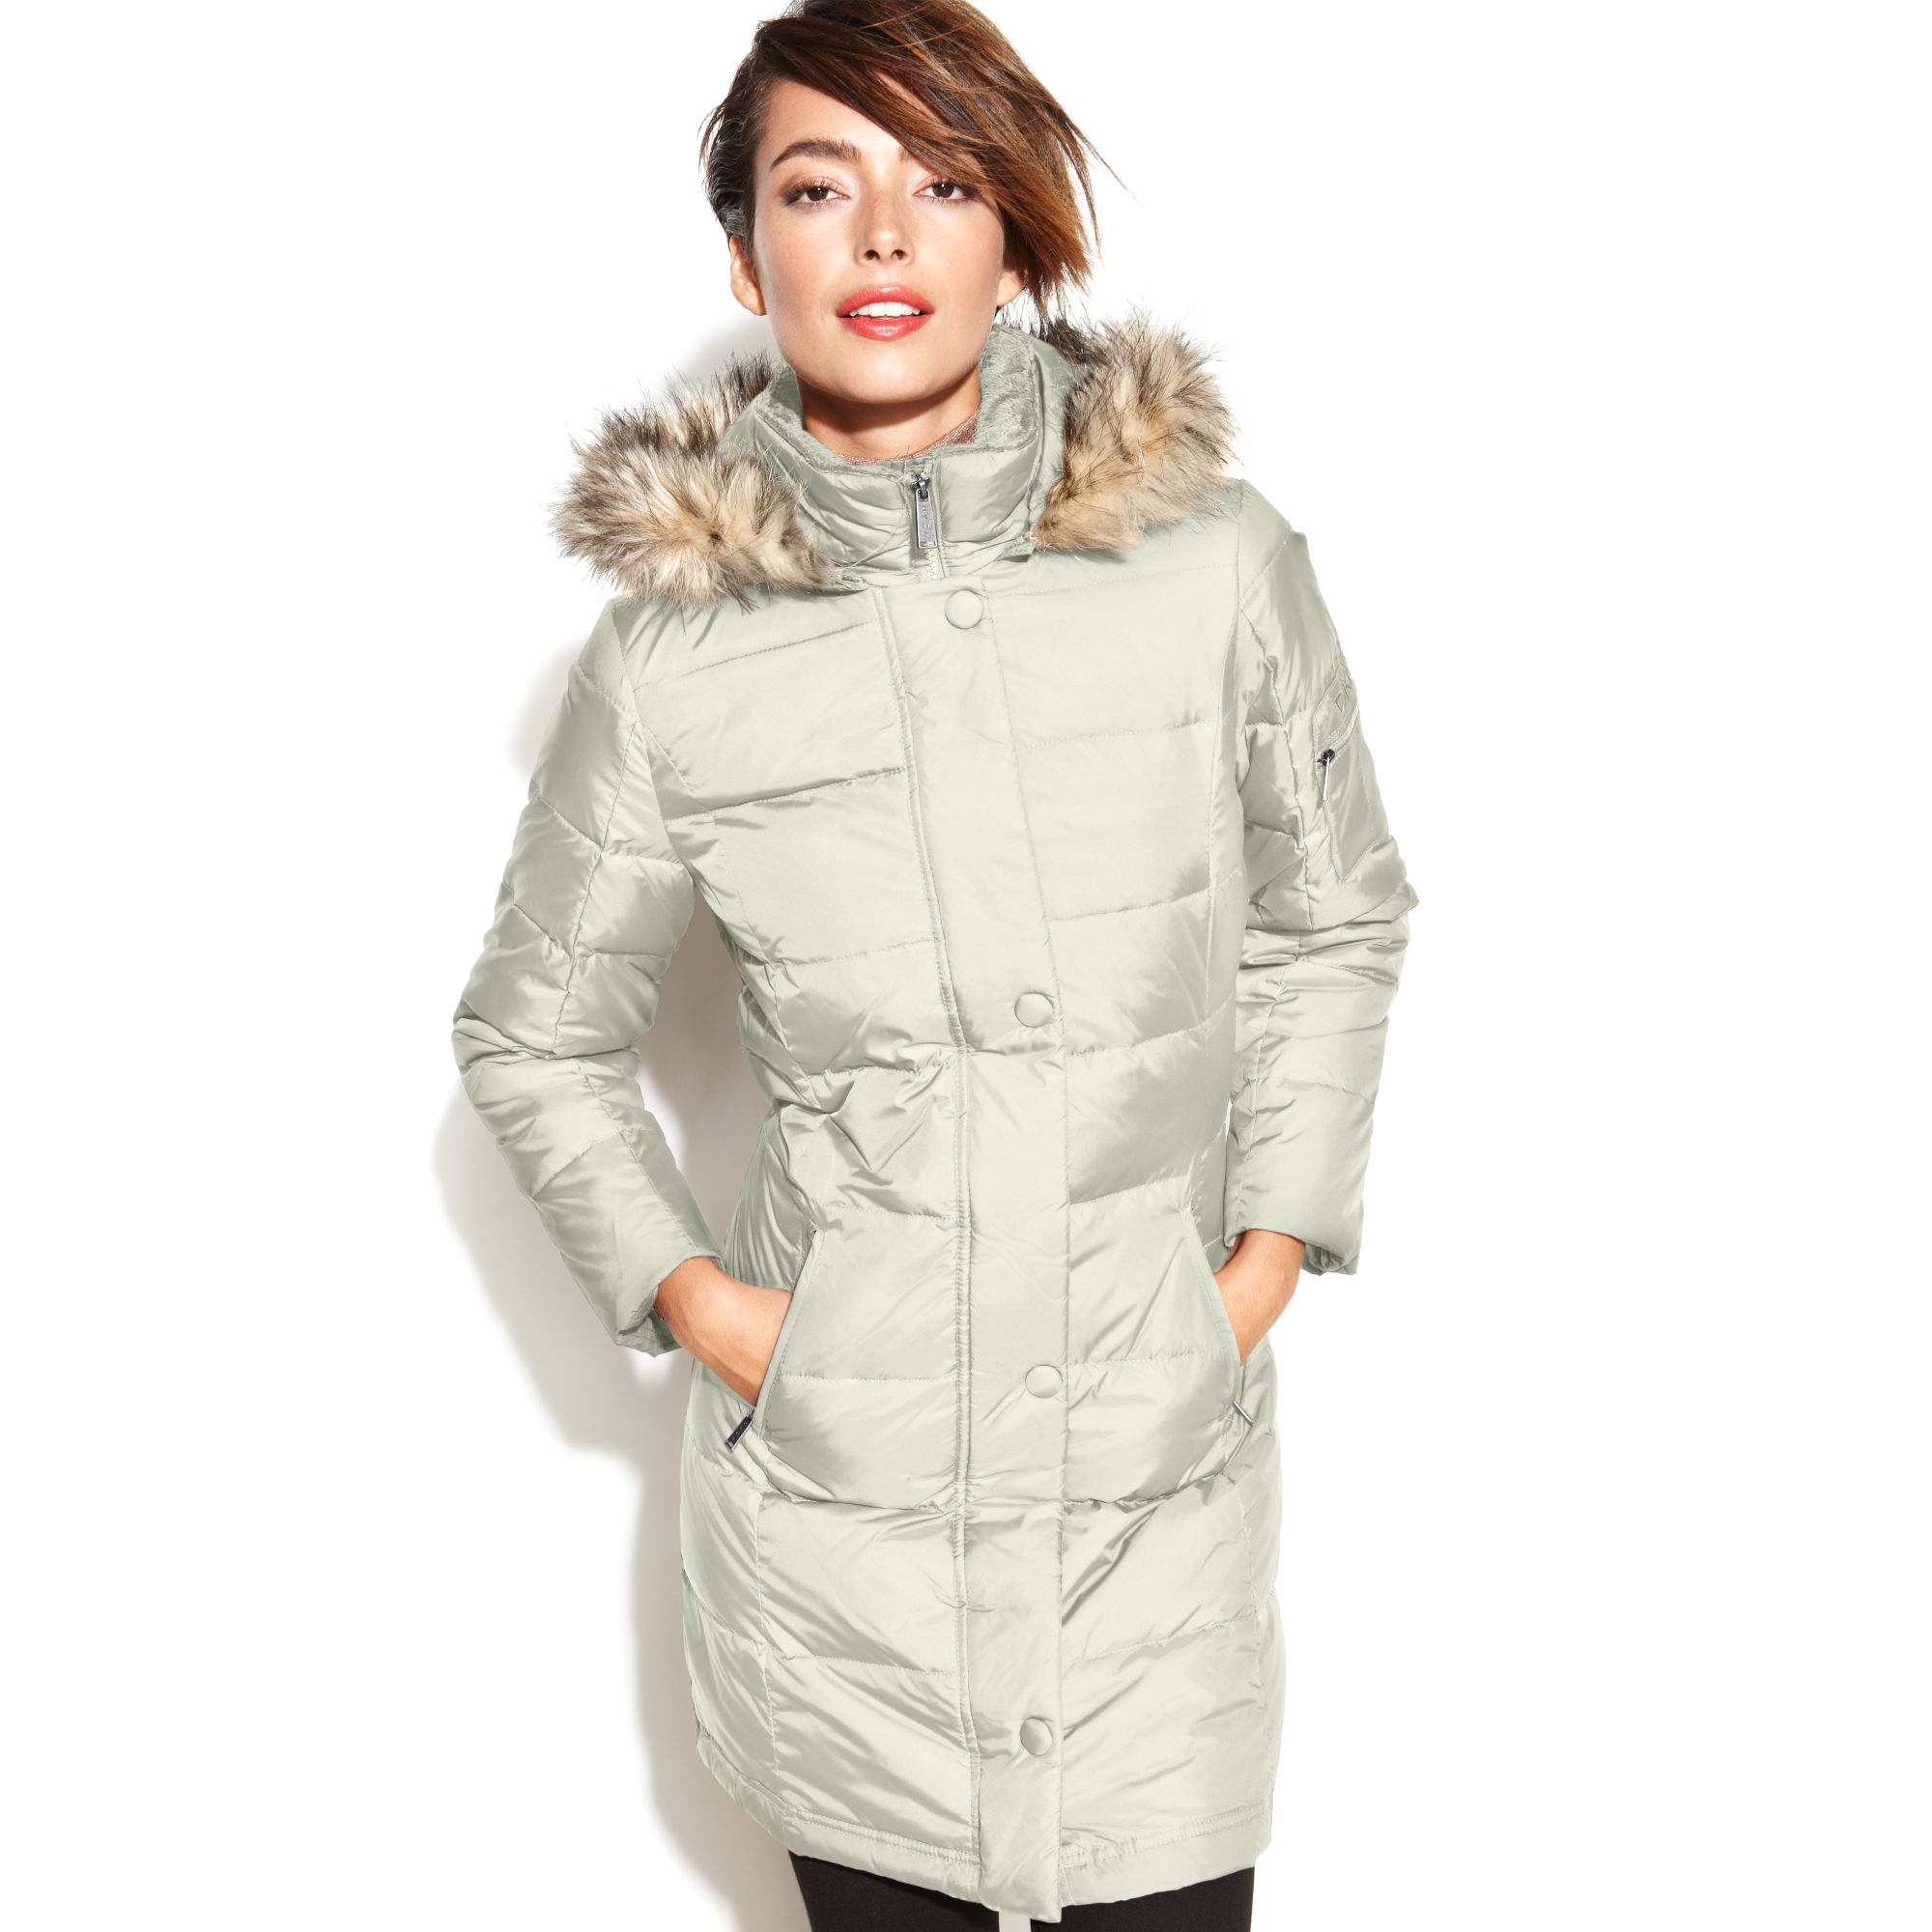 dc4808d58 Dkny Hooded Faux Fur Trim Belted Down Puffer Coat - Tradingbasis